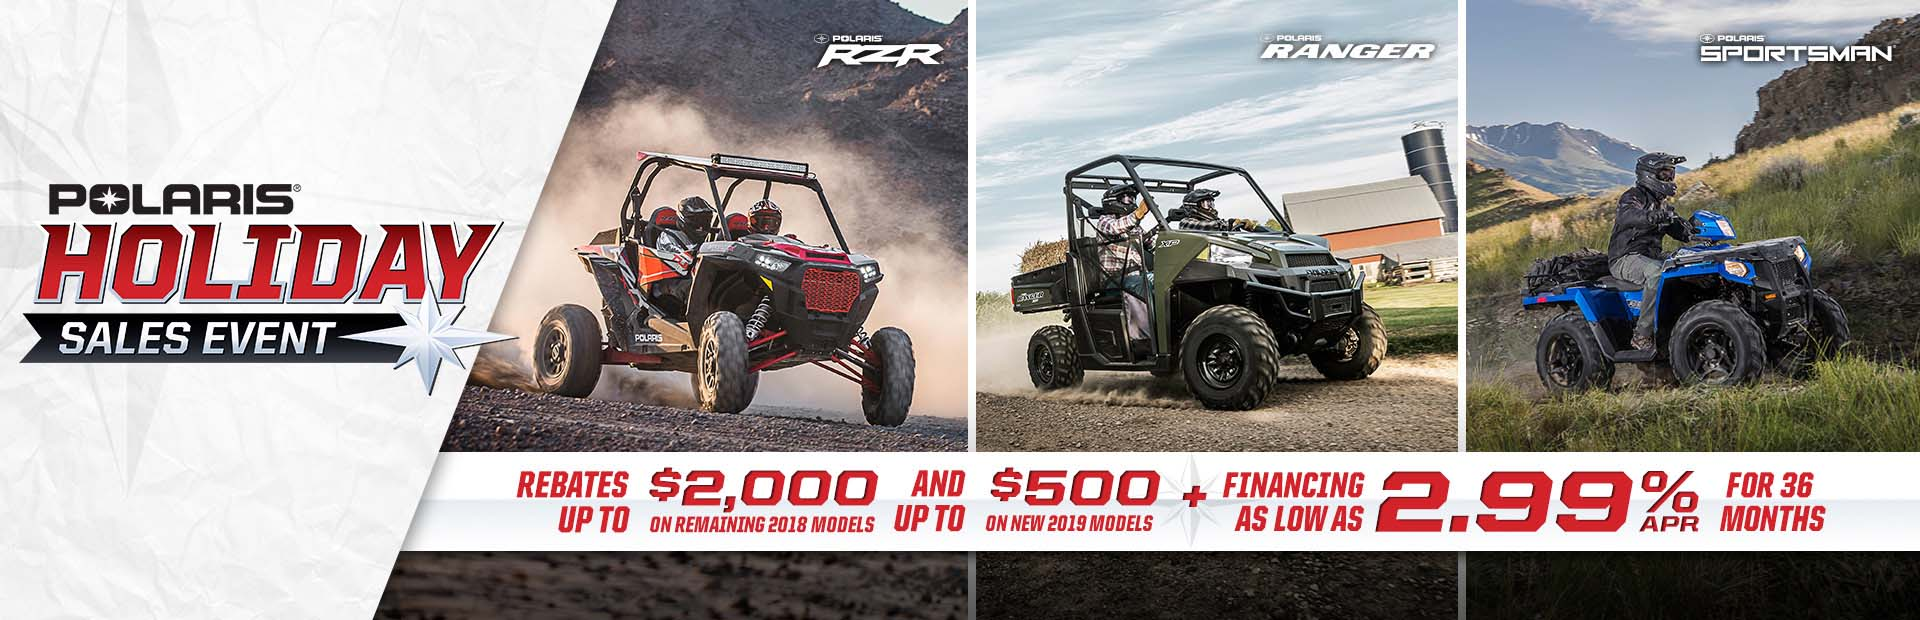 Polaris Industries: Polaris Holiday Sales Event